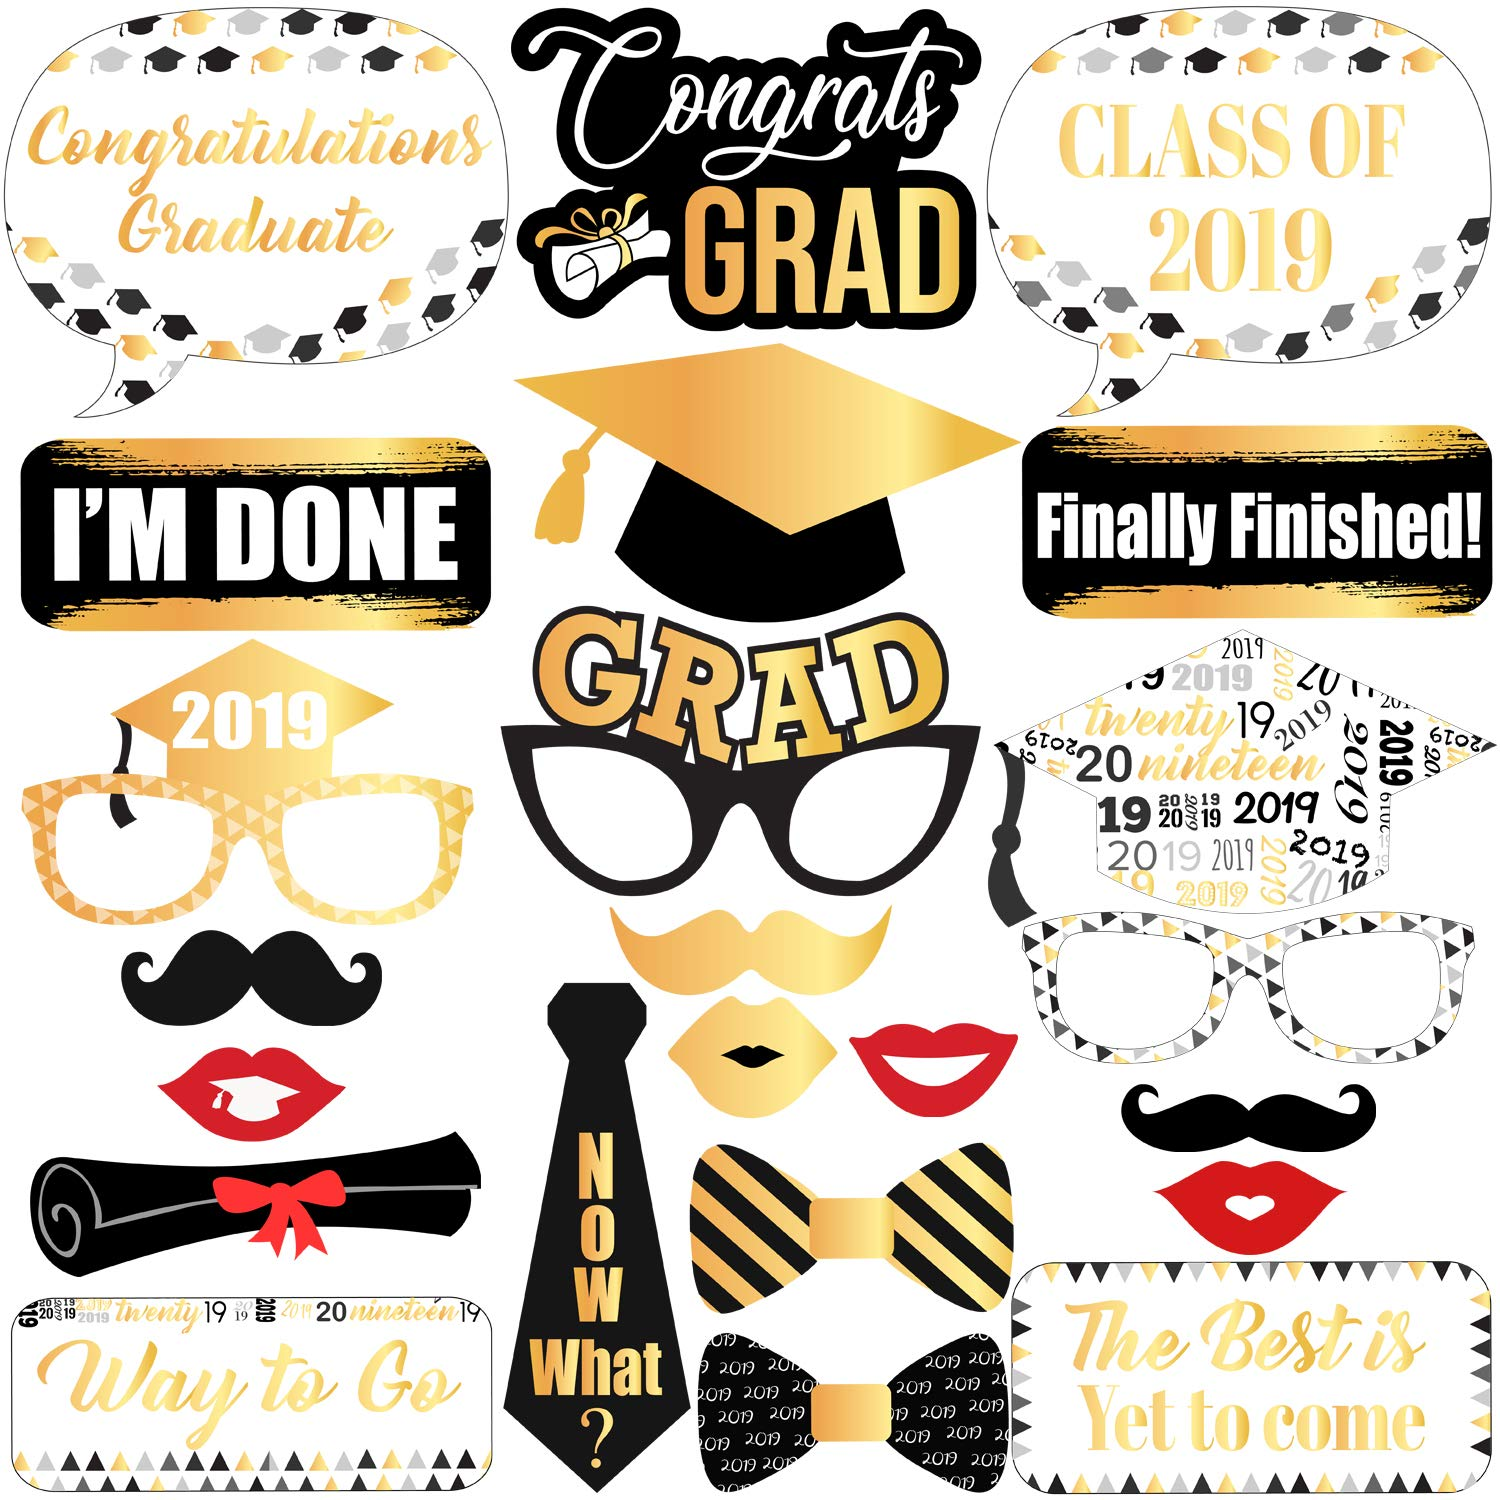 2020 Graduation Party Supplies.Graduation Photo Booth Props Black And Gold Graduation Decorations 2019 Graduation Party Supplies 2019 Graduation Party Decorations Class Of